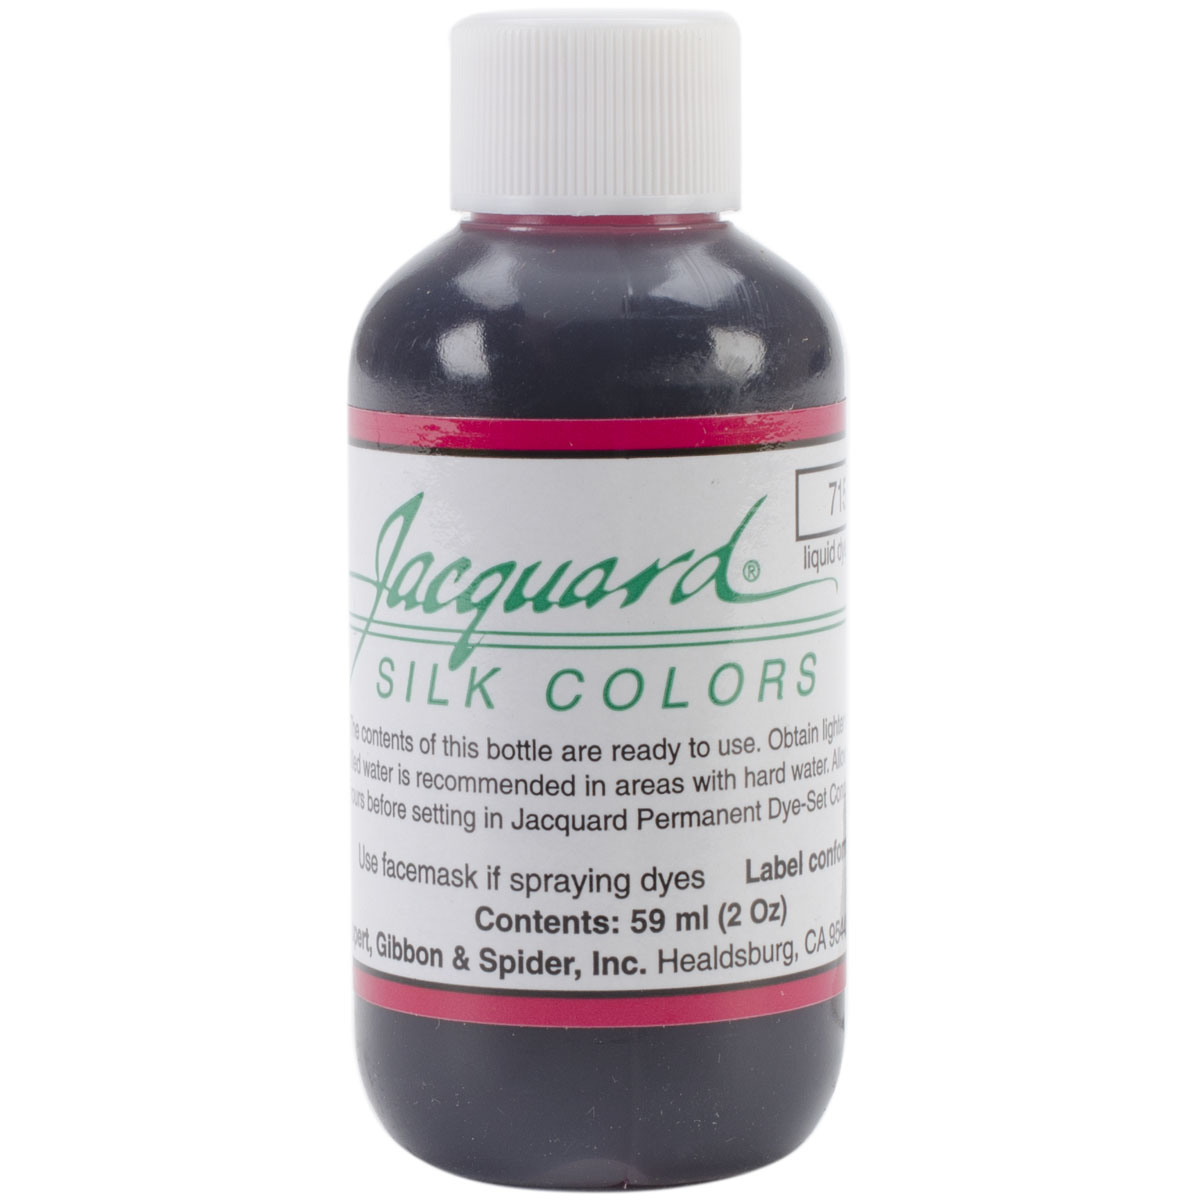 Jacquard Silk Colors 2oz-Magenta